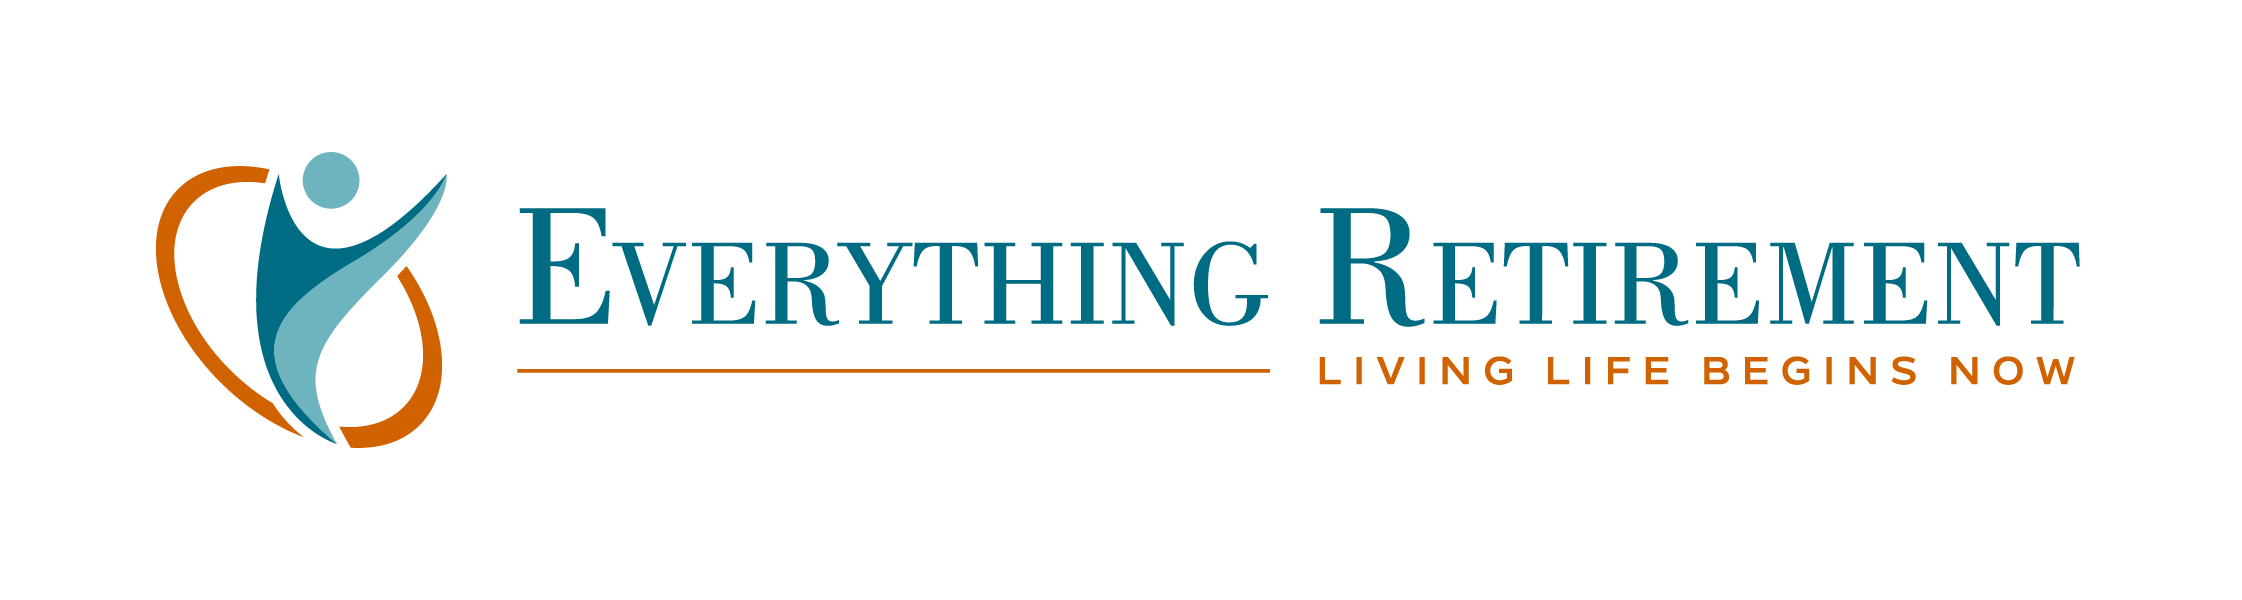 EVERYTHING-RETIREMENT_Logo_Horizontal_C2C